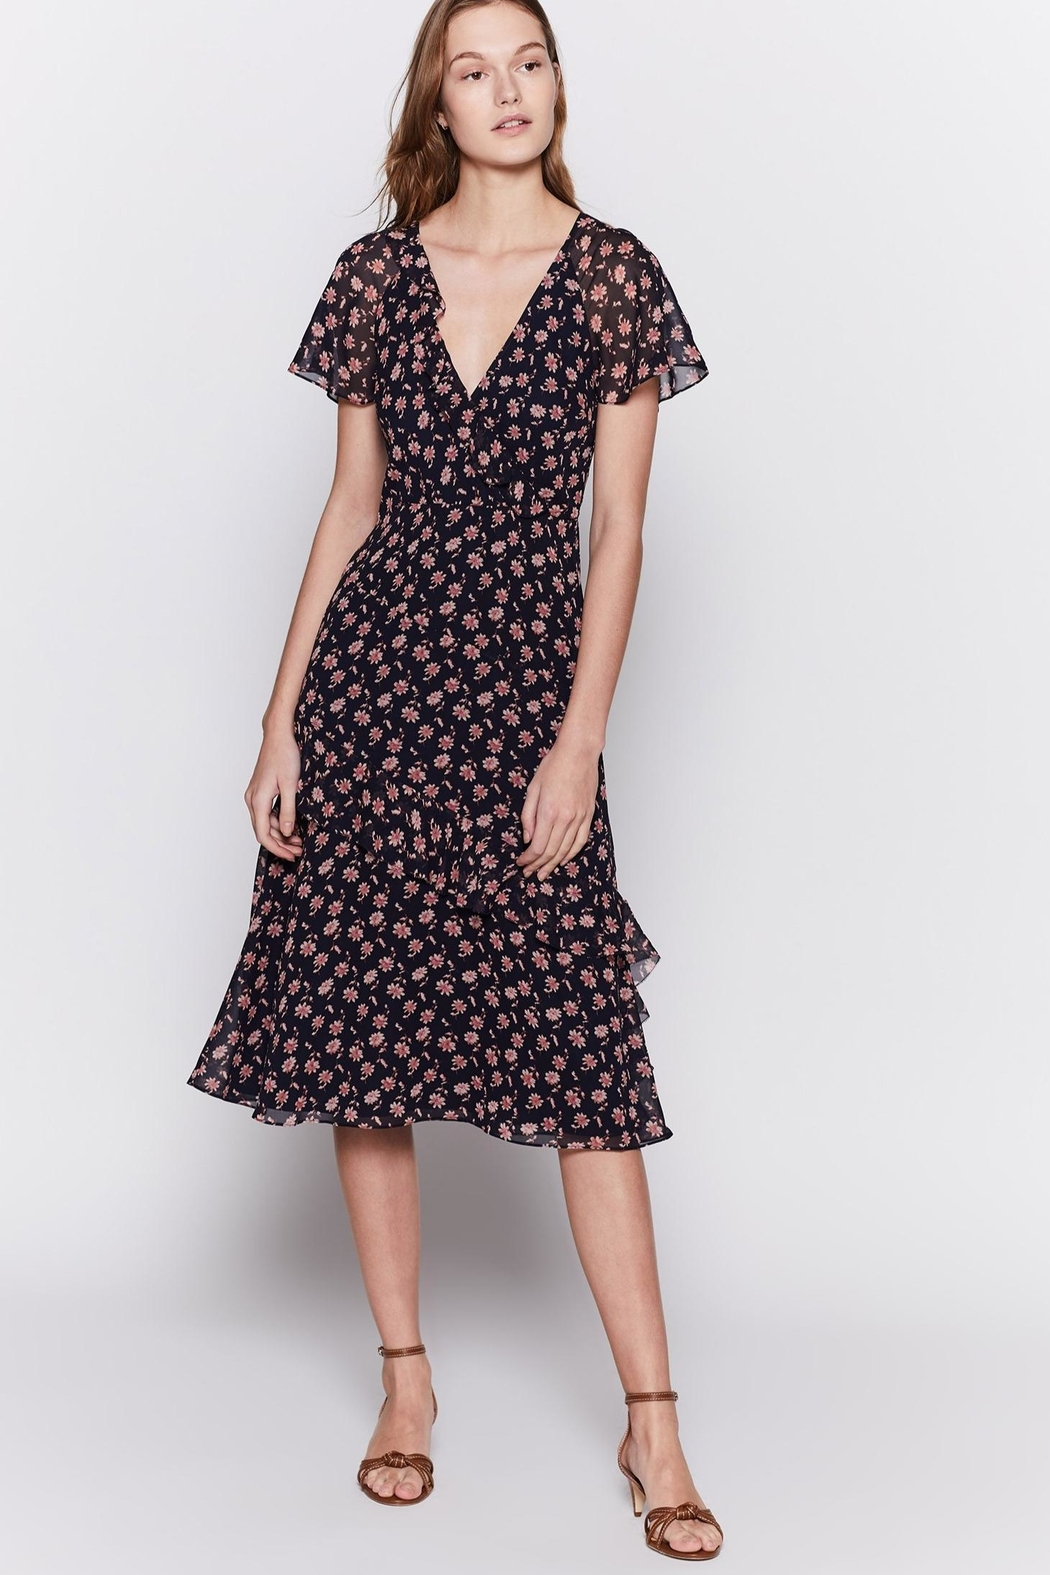 Joie Orita Silk Dress - Main Image